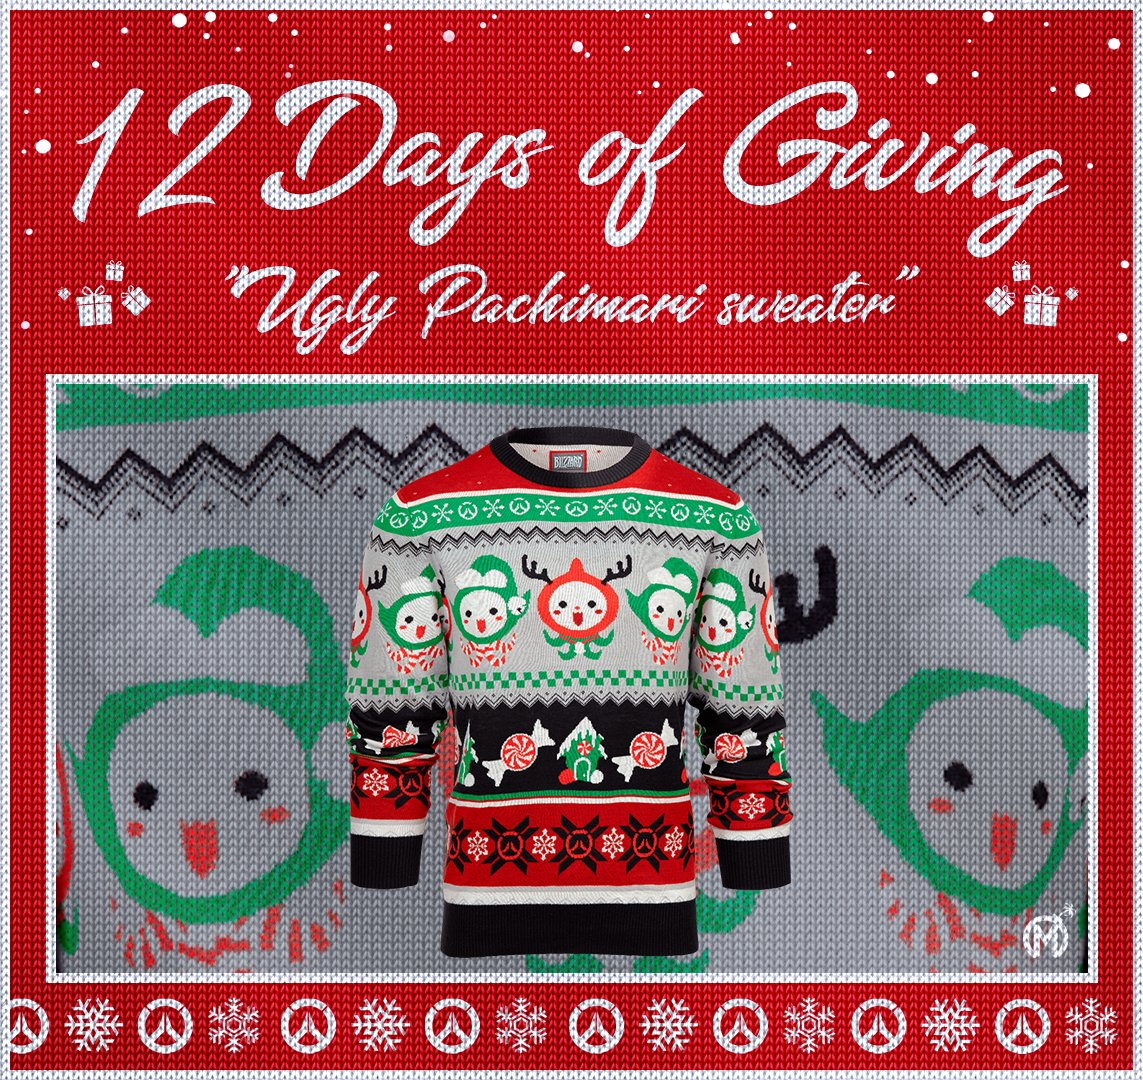 12 Days of Giving! Show up to your holiday parties in style.  Day 8: The Not-So-Ugly Holiday Pachimari Sweater.  🎁 Retweet  🎁 Follow 🎁 Reply with #Pachimari  Daily winners will be notified via DM at 11:59PM PST. 🎄